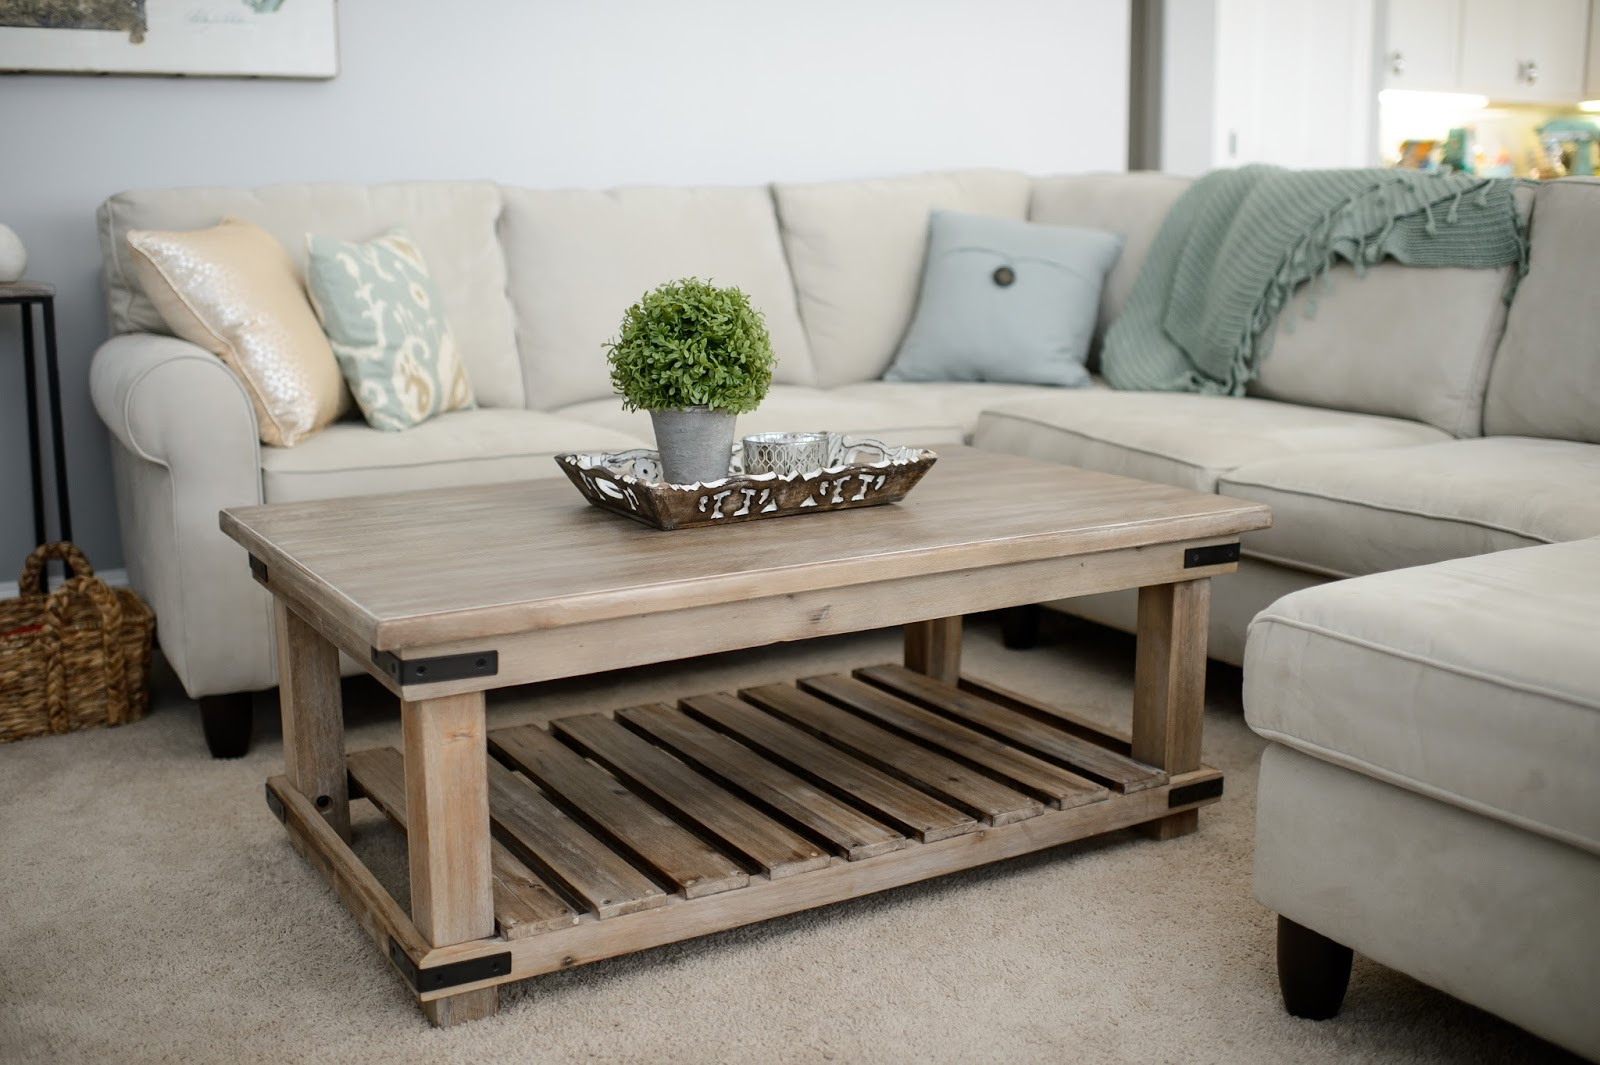 A New Coffee Table